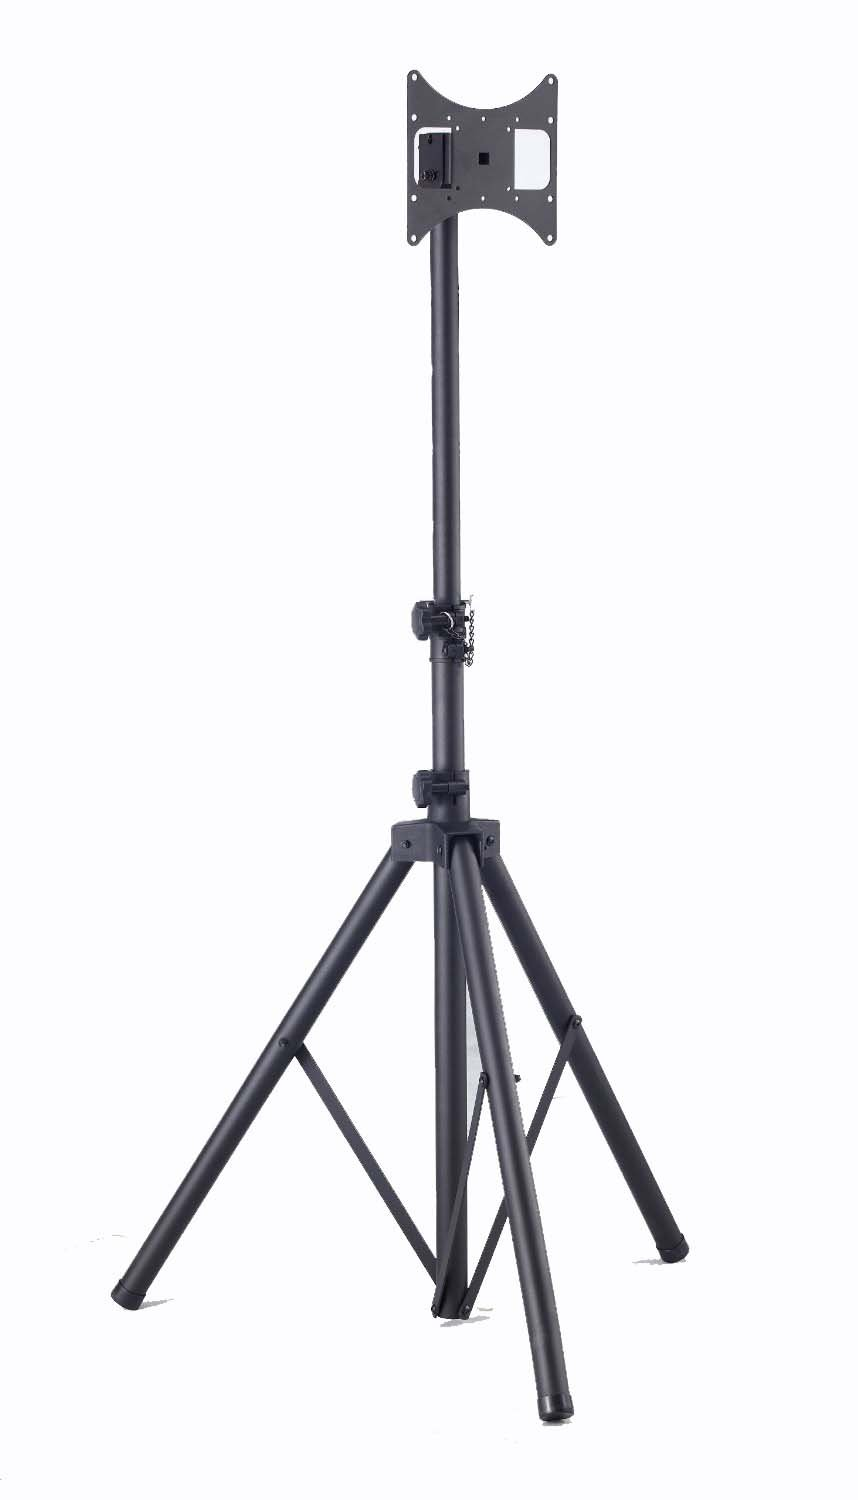 Elitech Steel Portable Plasma or LCD TV Tripod Stand for up to 37'' Flat Panel TV, Height Adjustable. Max Stand Height 70''